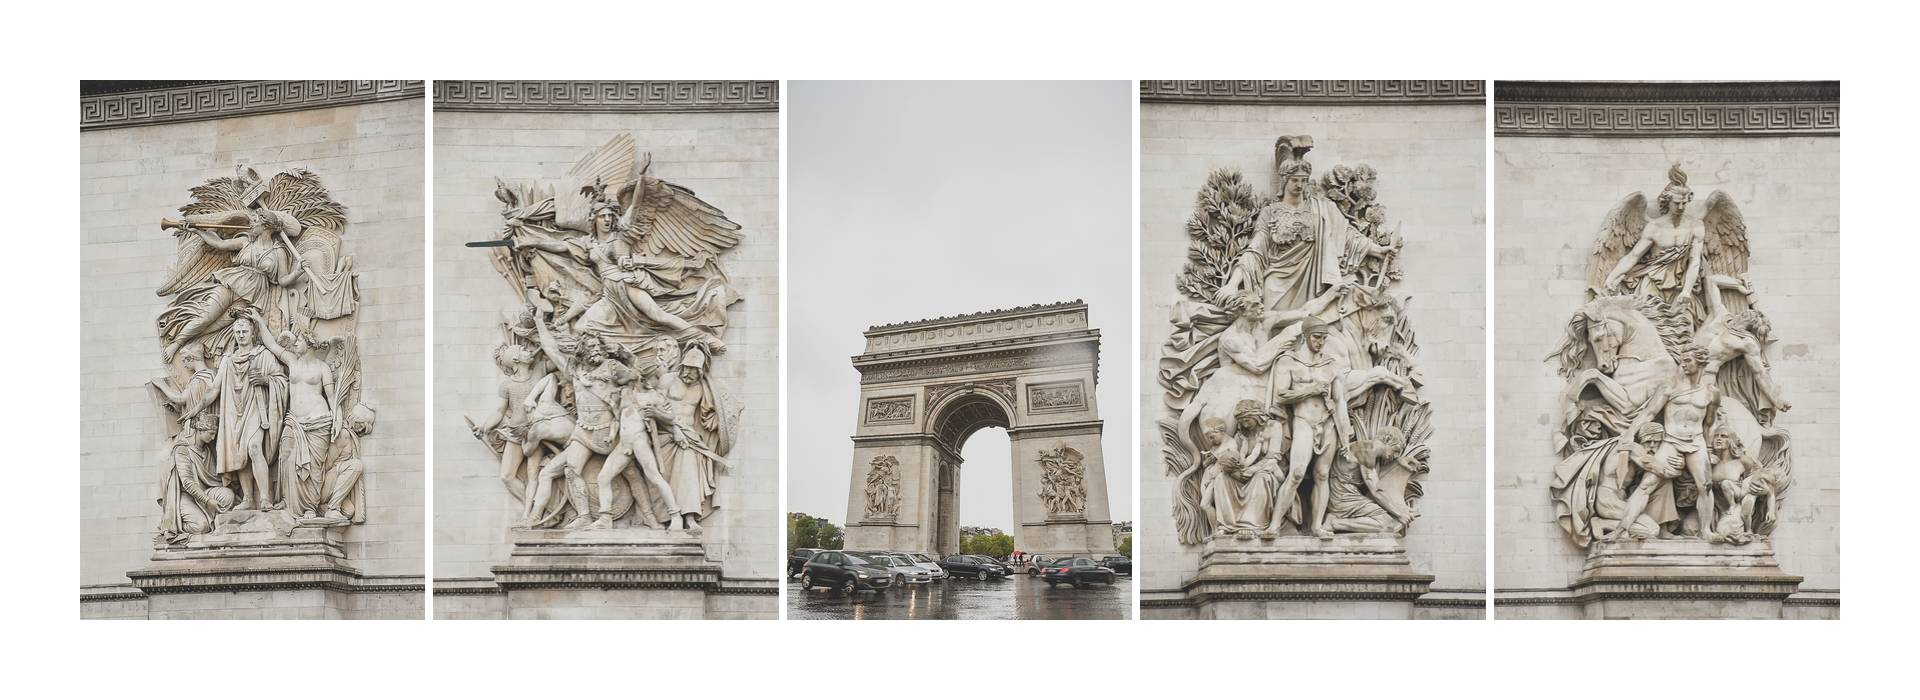 Live your Life - París - Arc du Triomphe